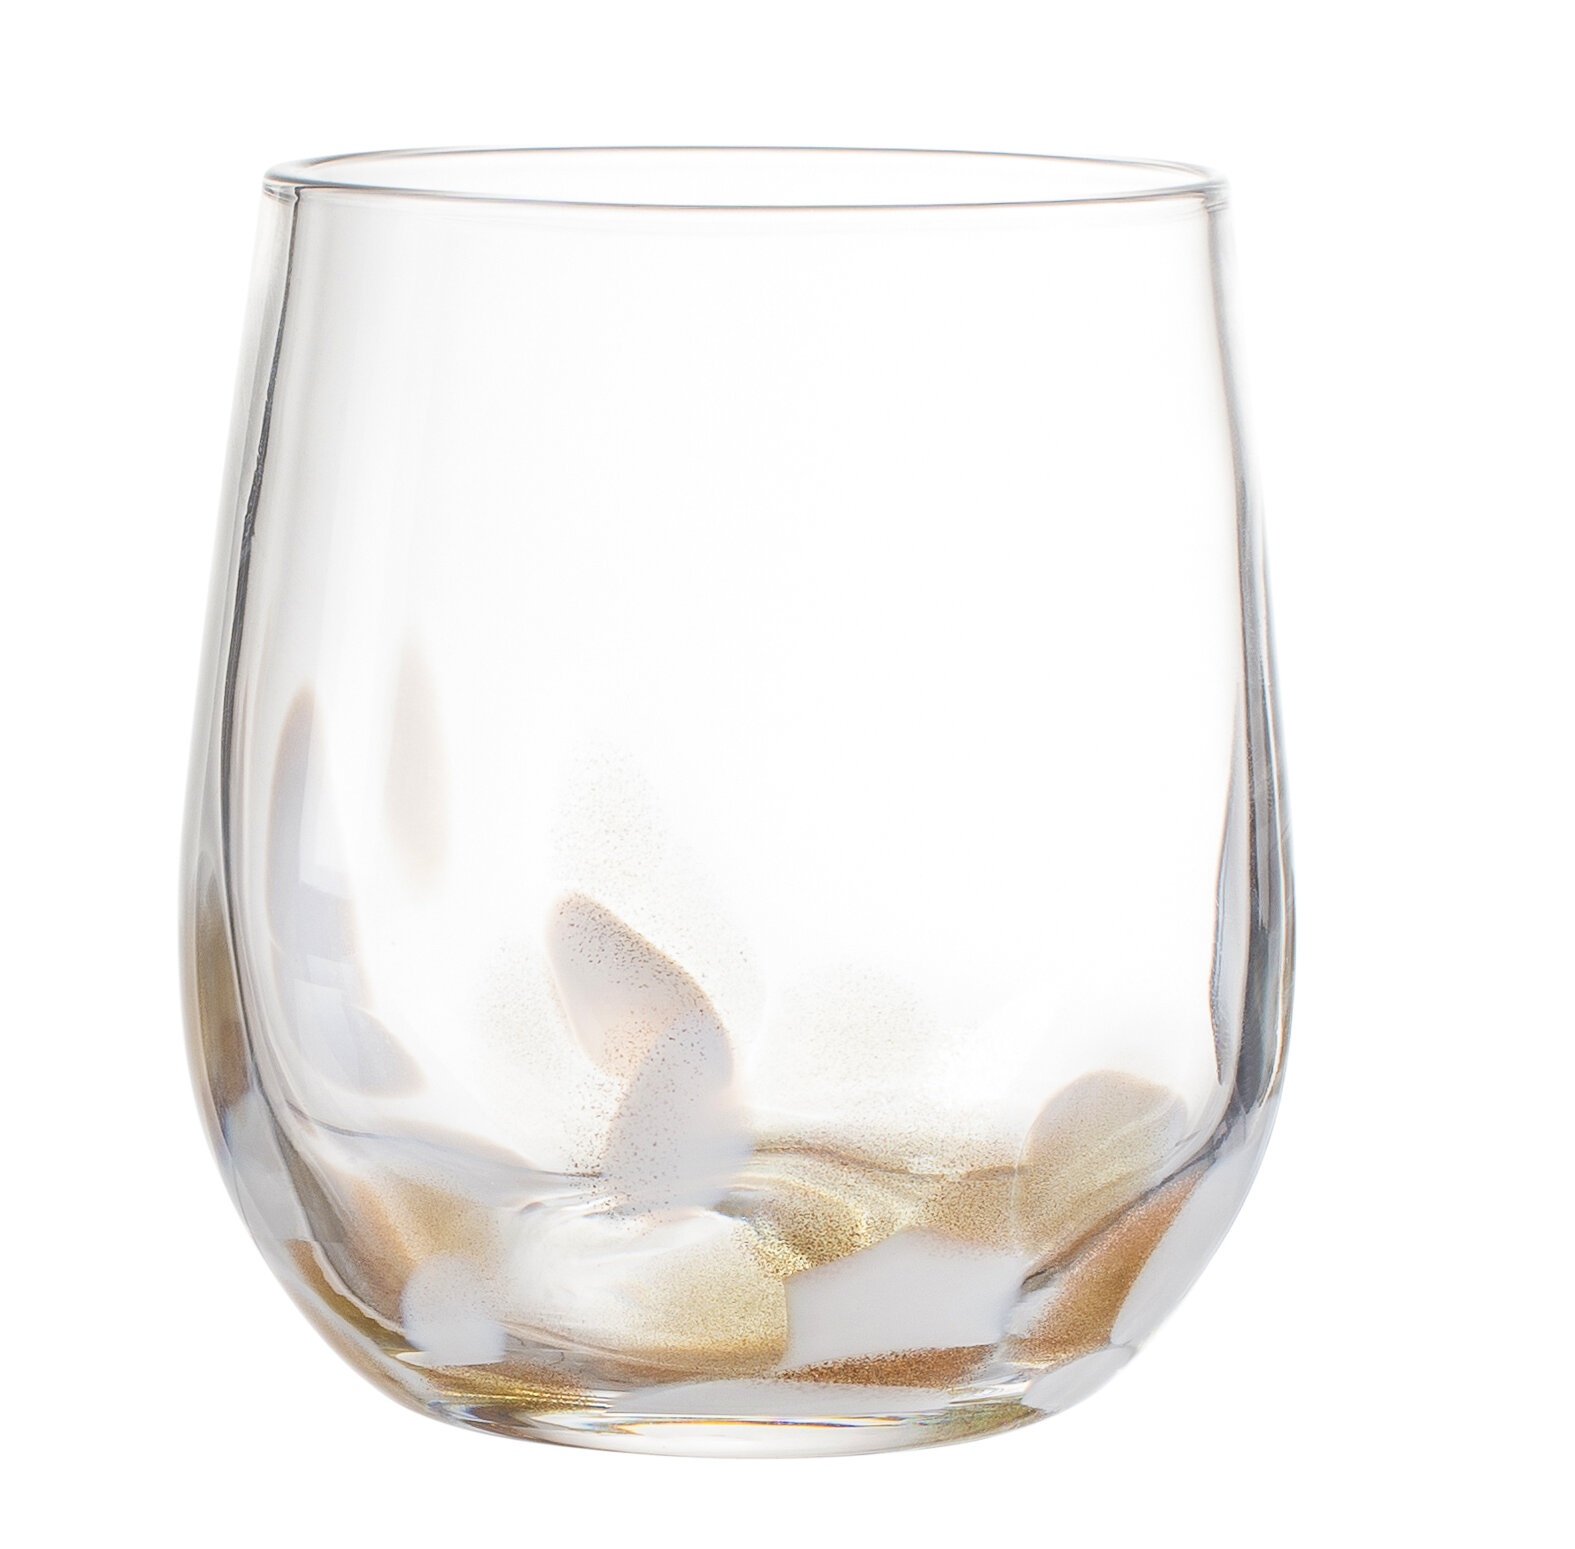 elle decor simone 16 oz glass every day glass birch lane - 16 Oz Glass